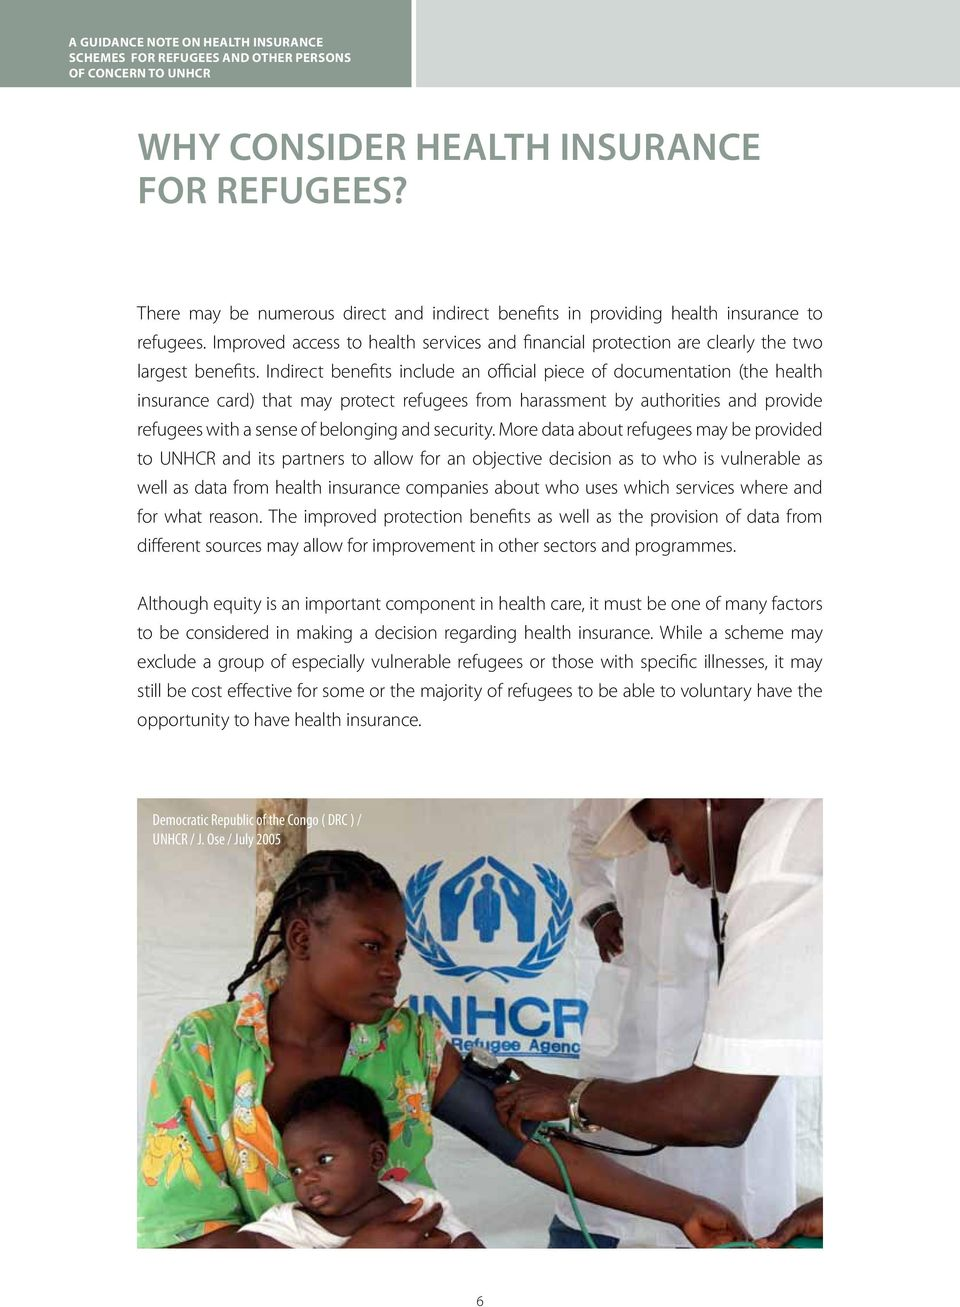 Indirect benefits include an official piece of documentation (the health insurance card) that may protect refugees from harassment by authorities and provide refugees with a sense of belonging and